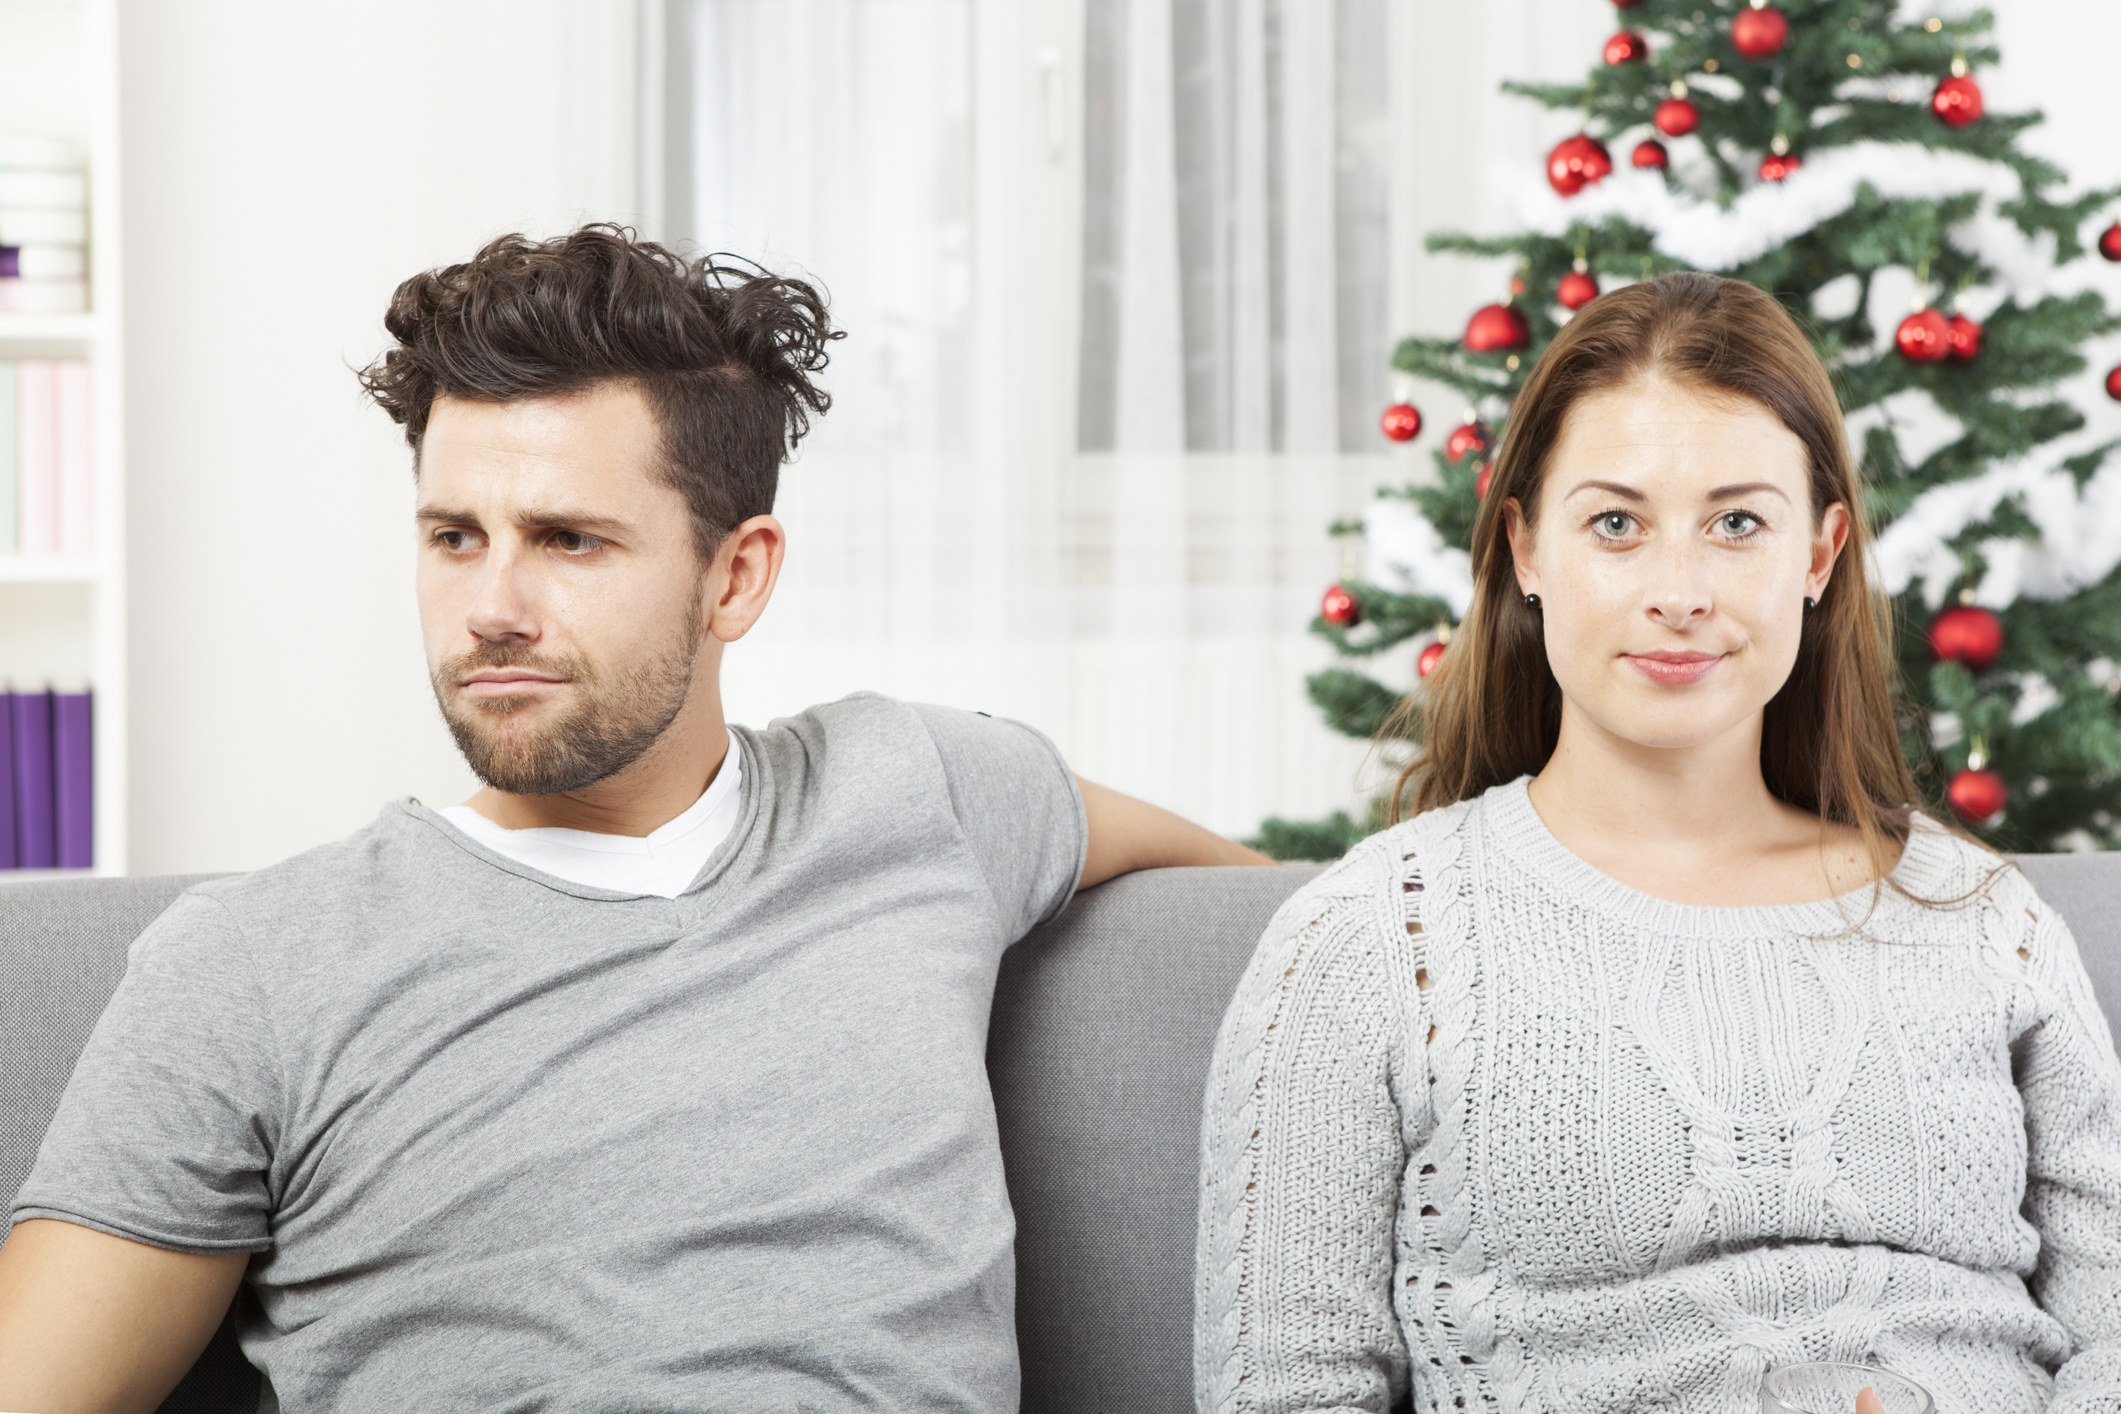 An angry couple fighting at Christmas